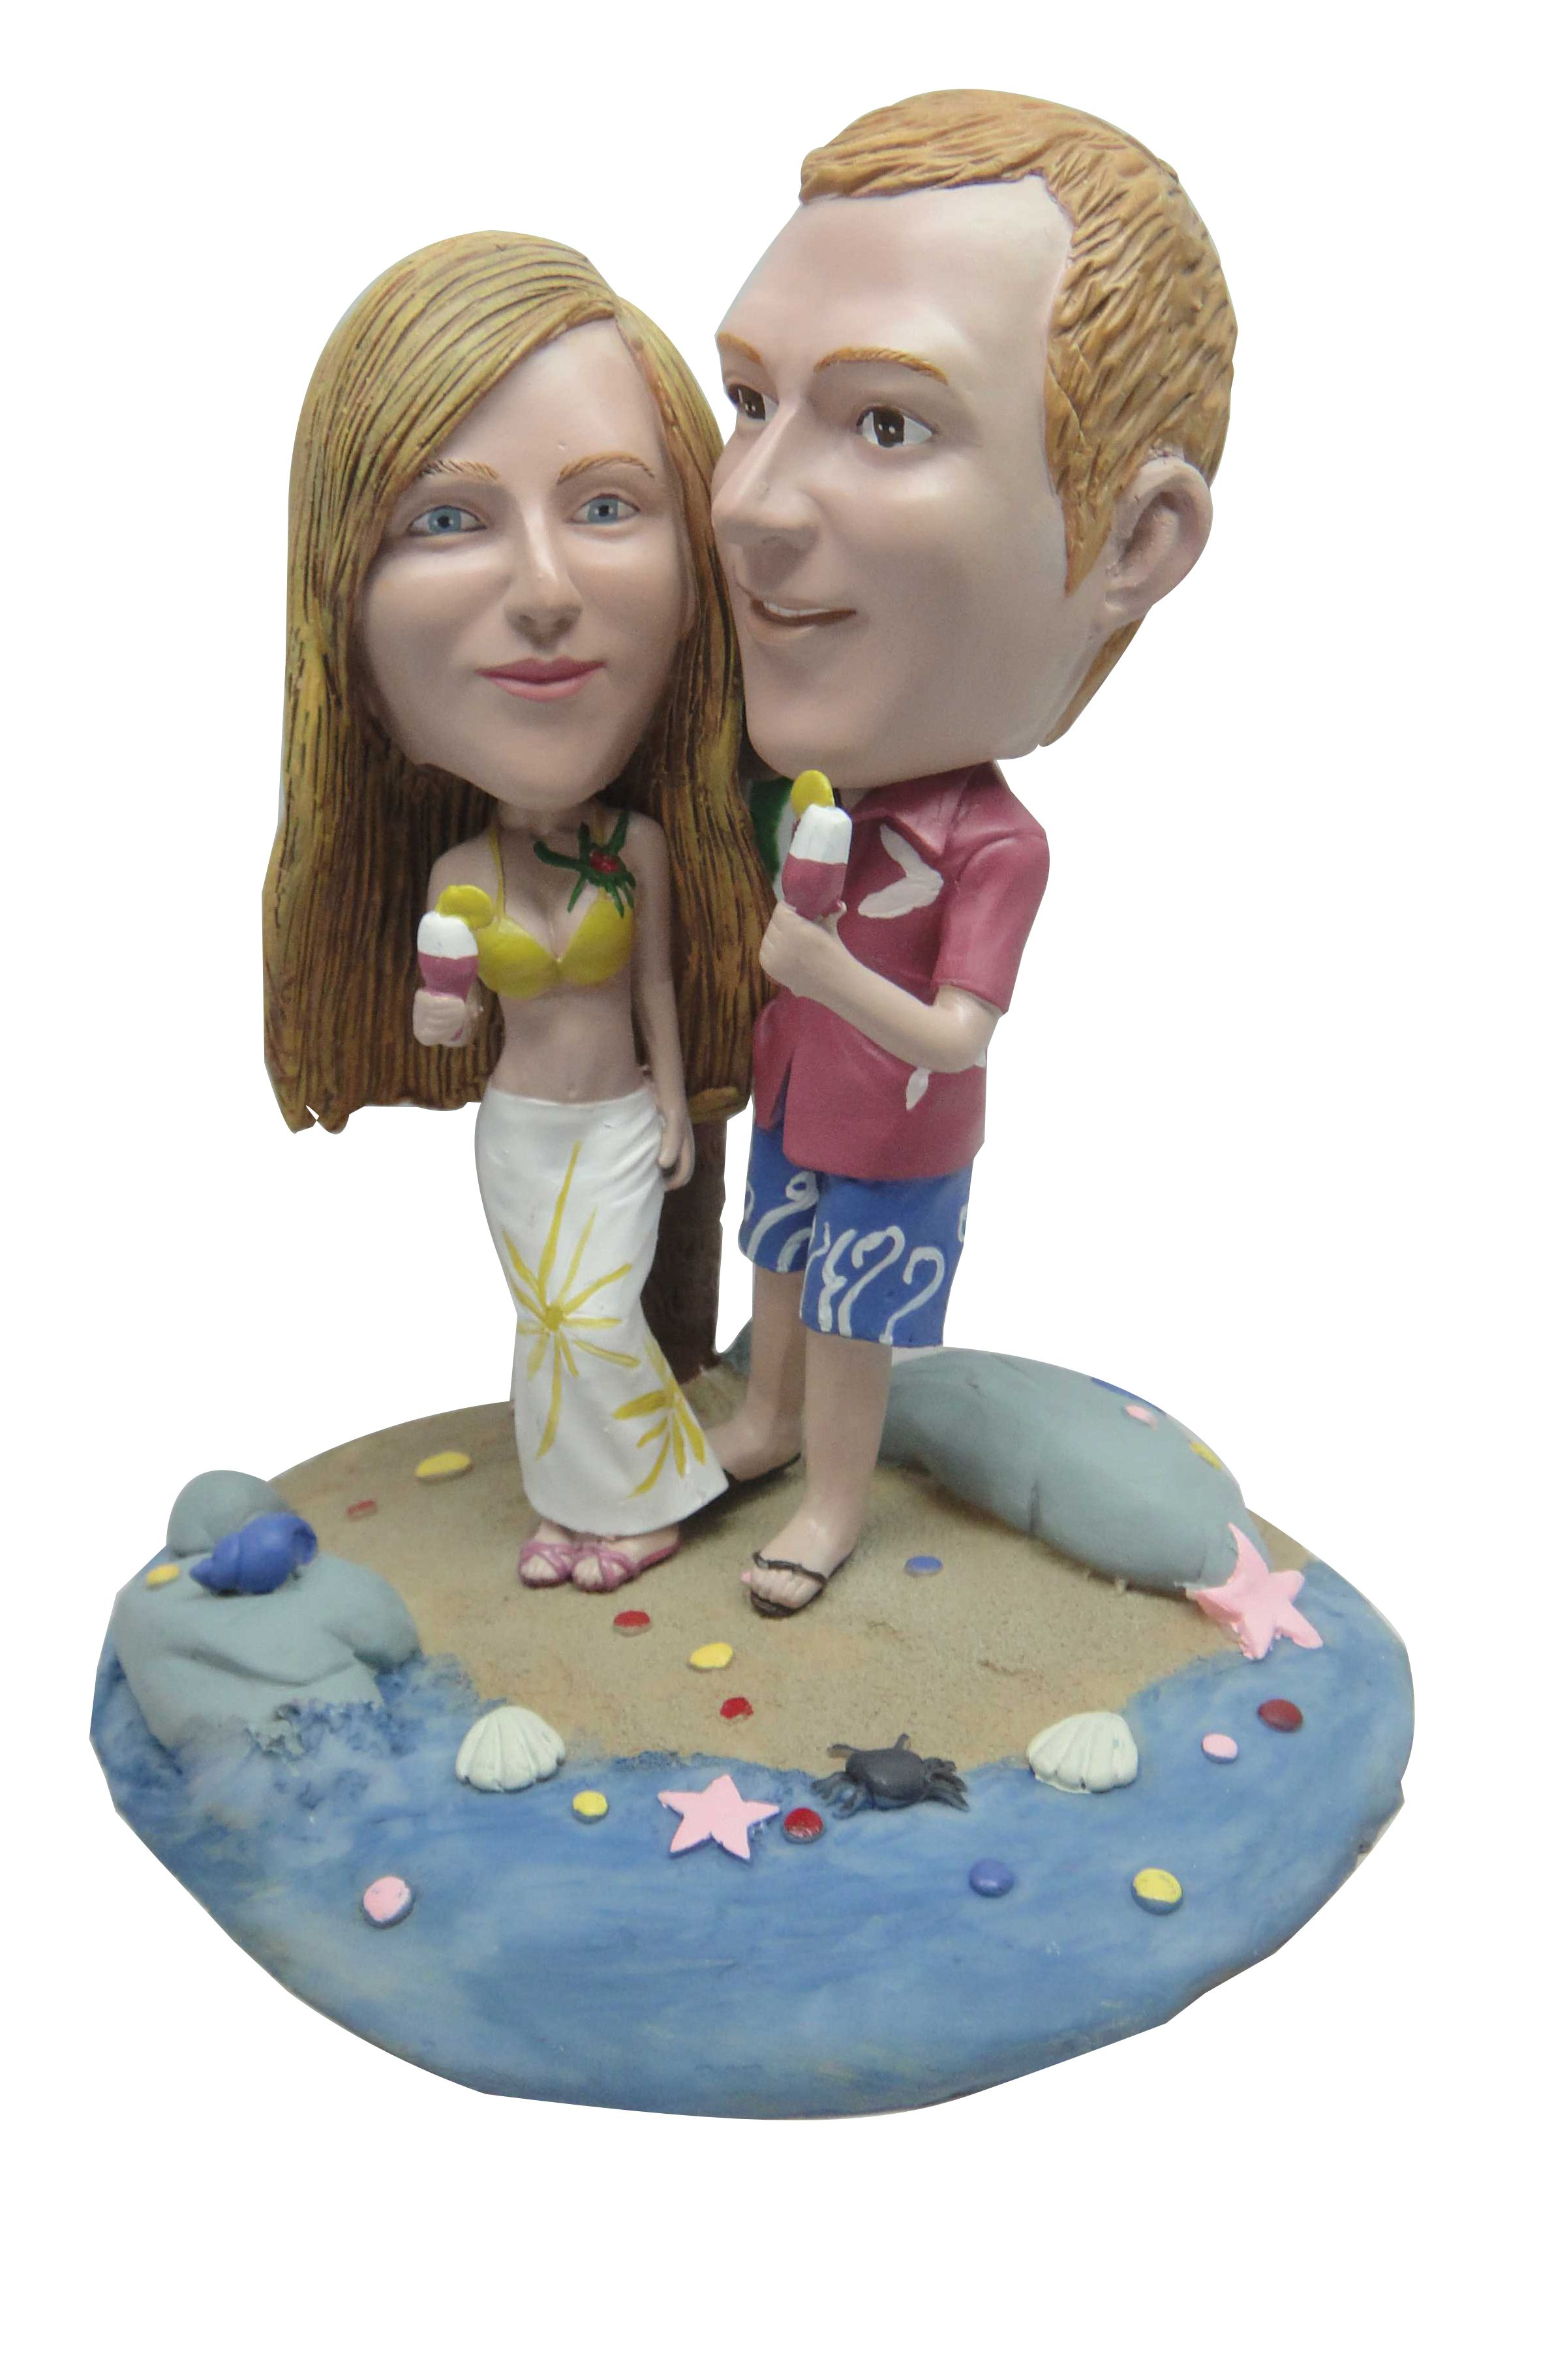 Awesome collection of bobblehead cake toppers, personalized cake toppers, wedding gift, personalized wedding gift, custom bobbleheads and many more at 1minime.